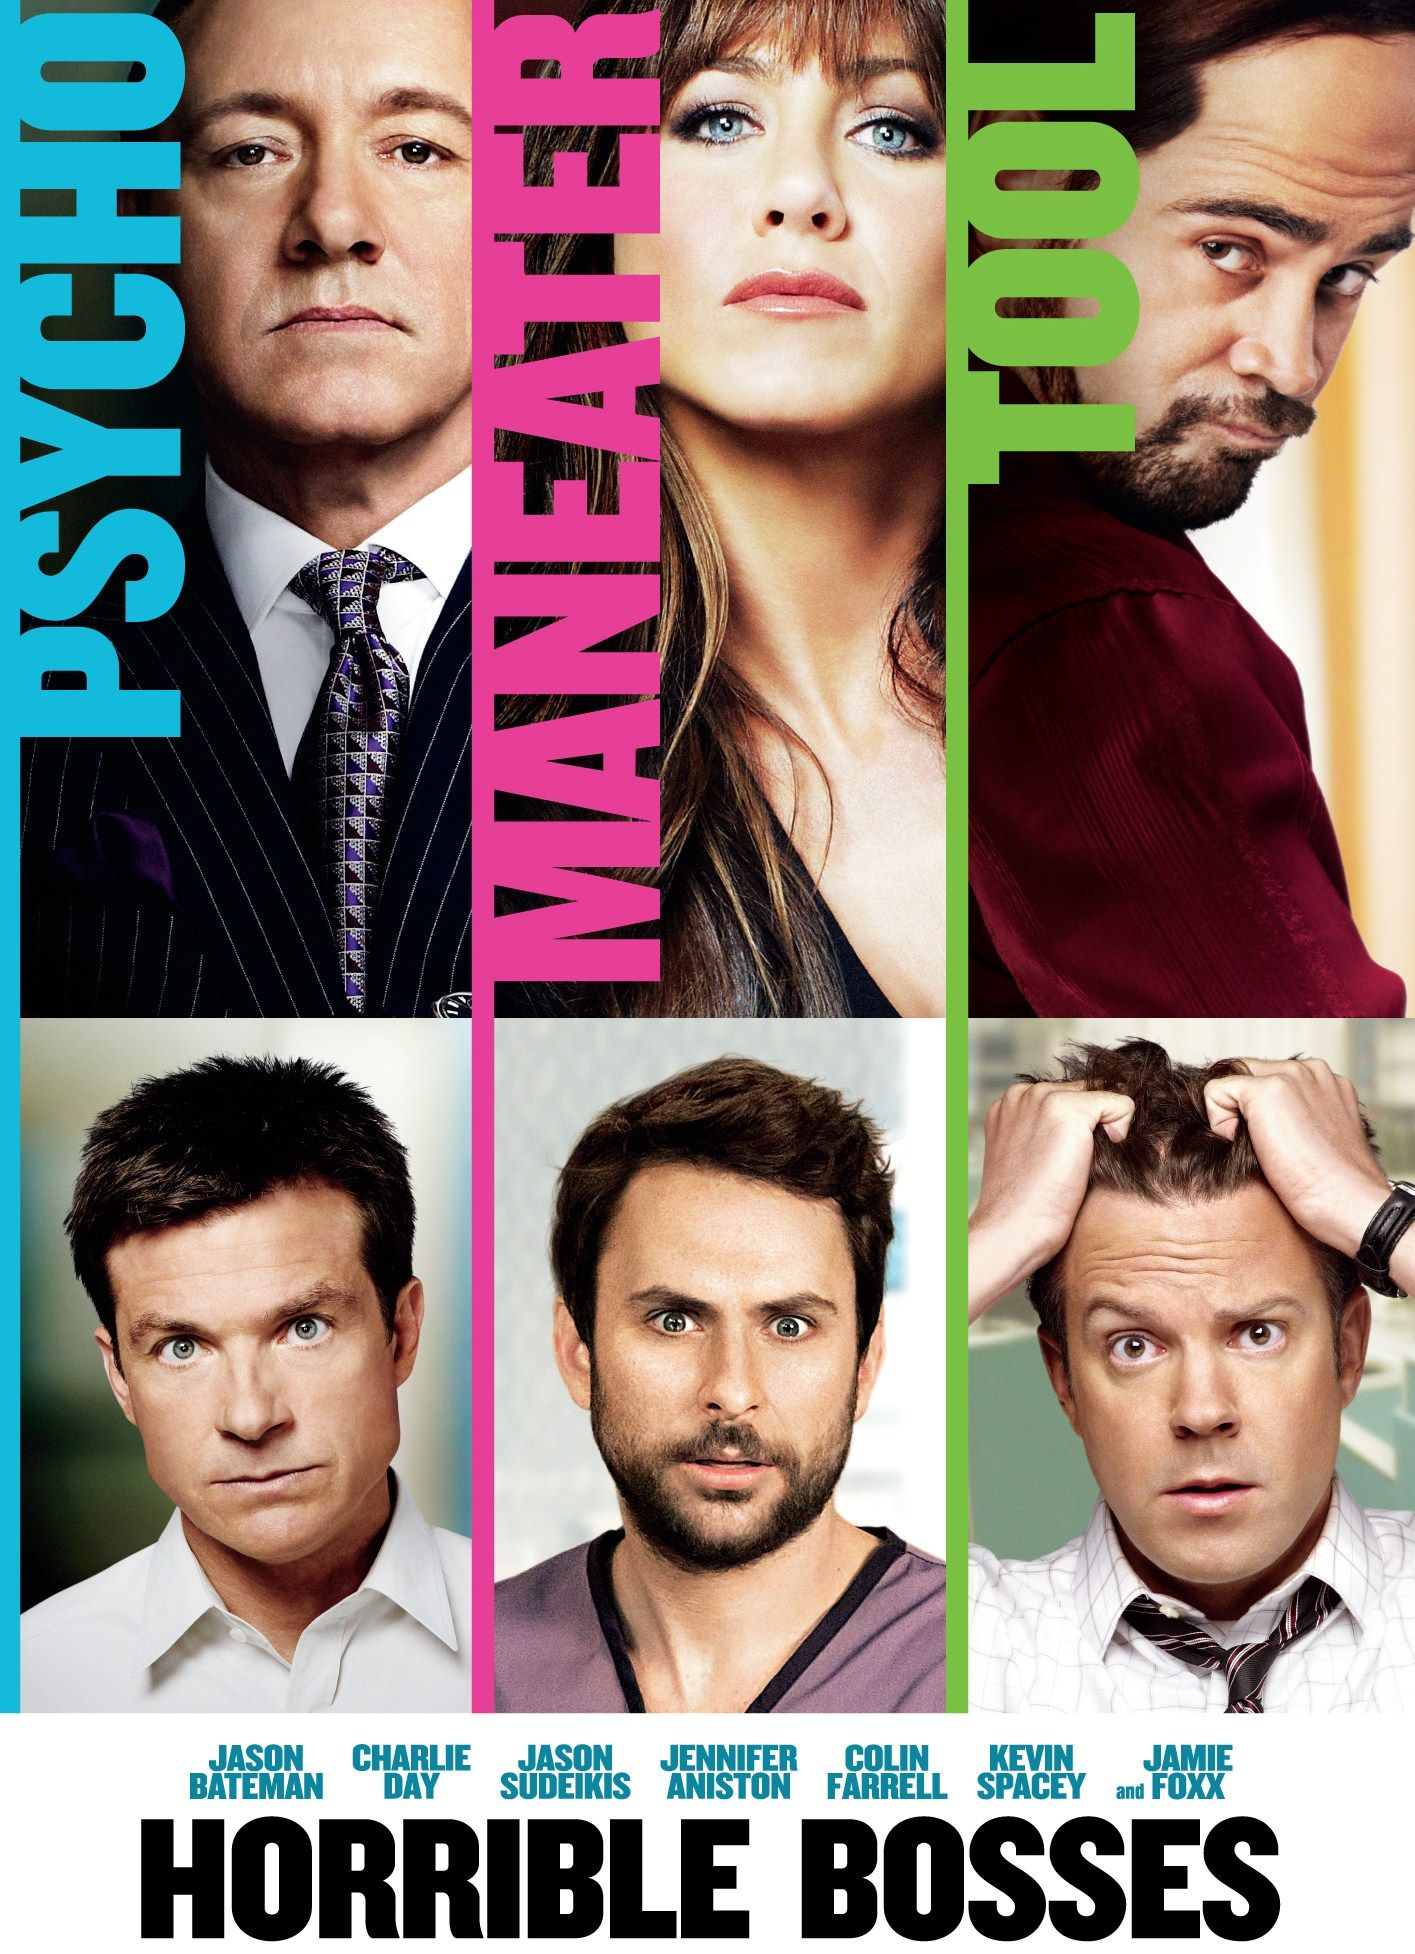 horrible bosses (seth gordon, 2011) Horrible bosses